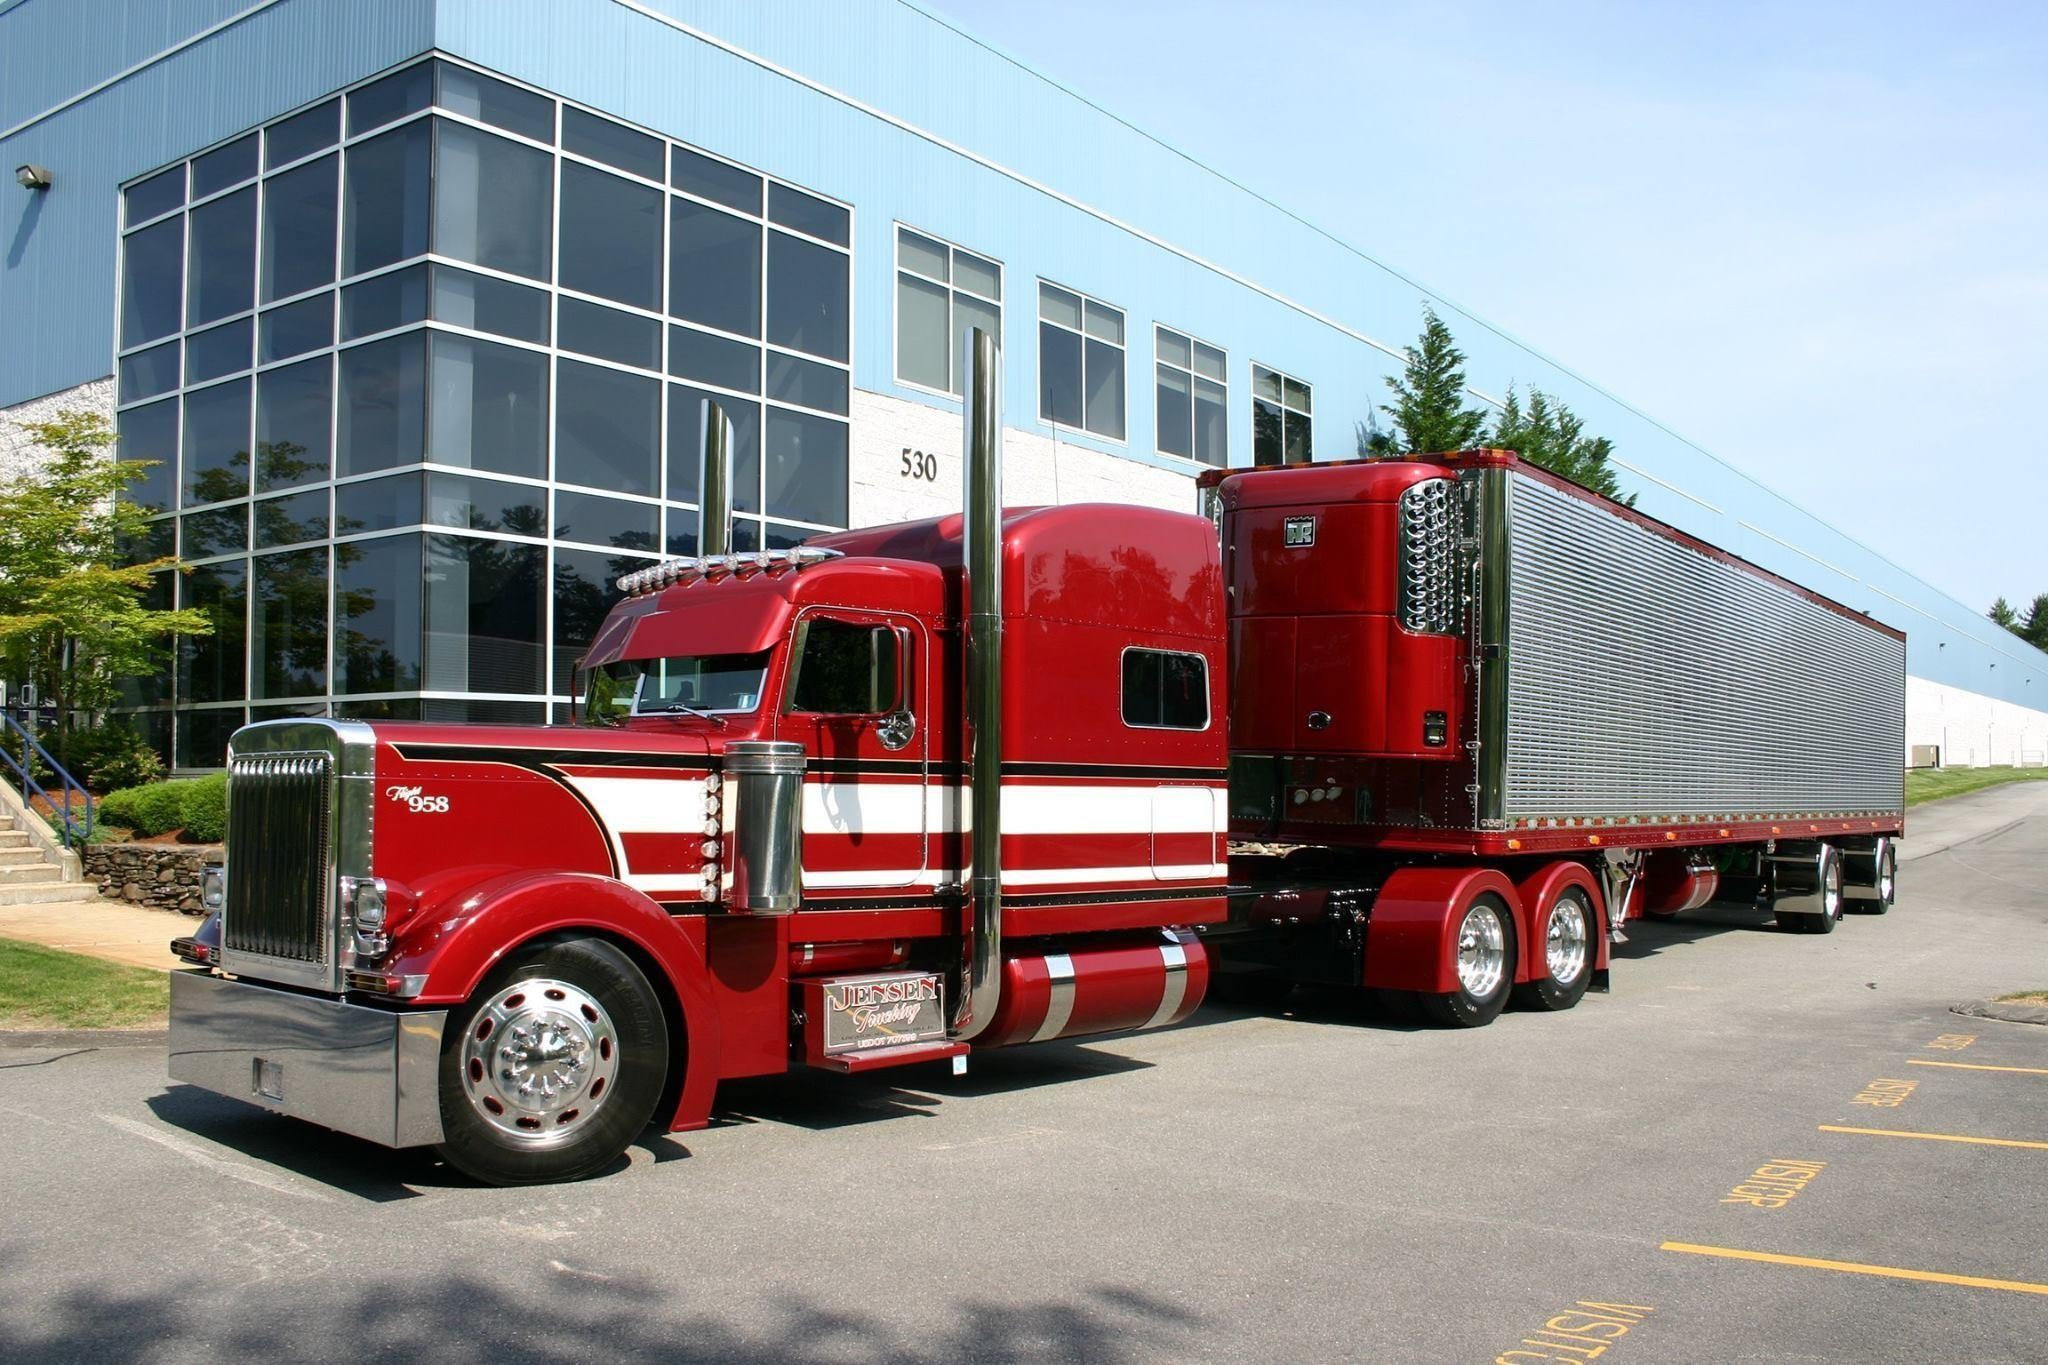 2048x1365 peterbilt wallpaper #881240